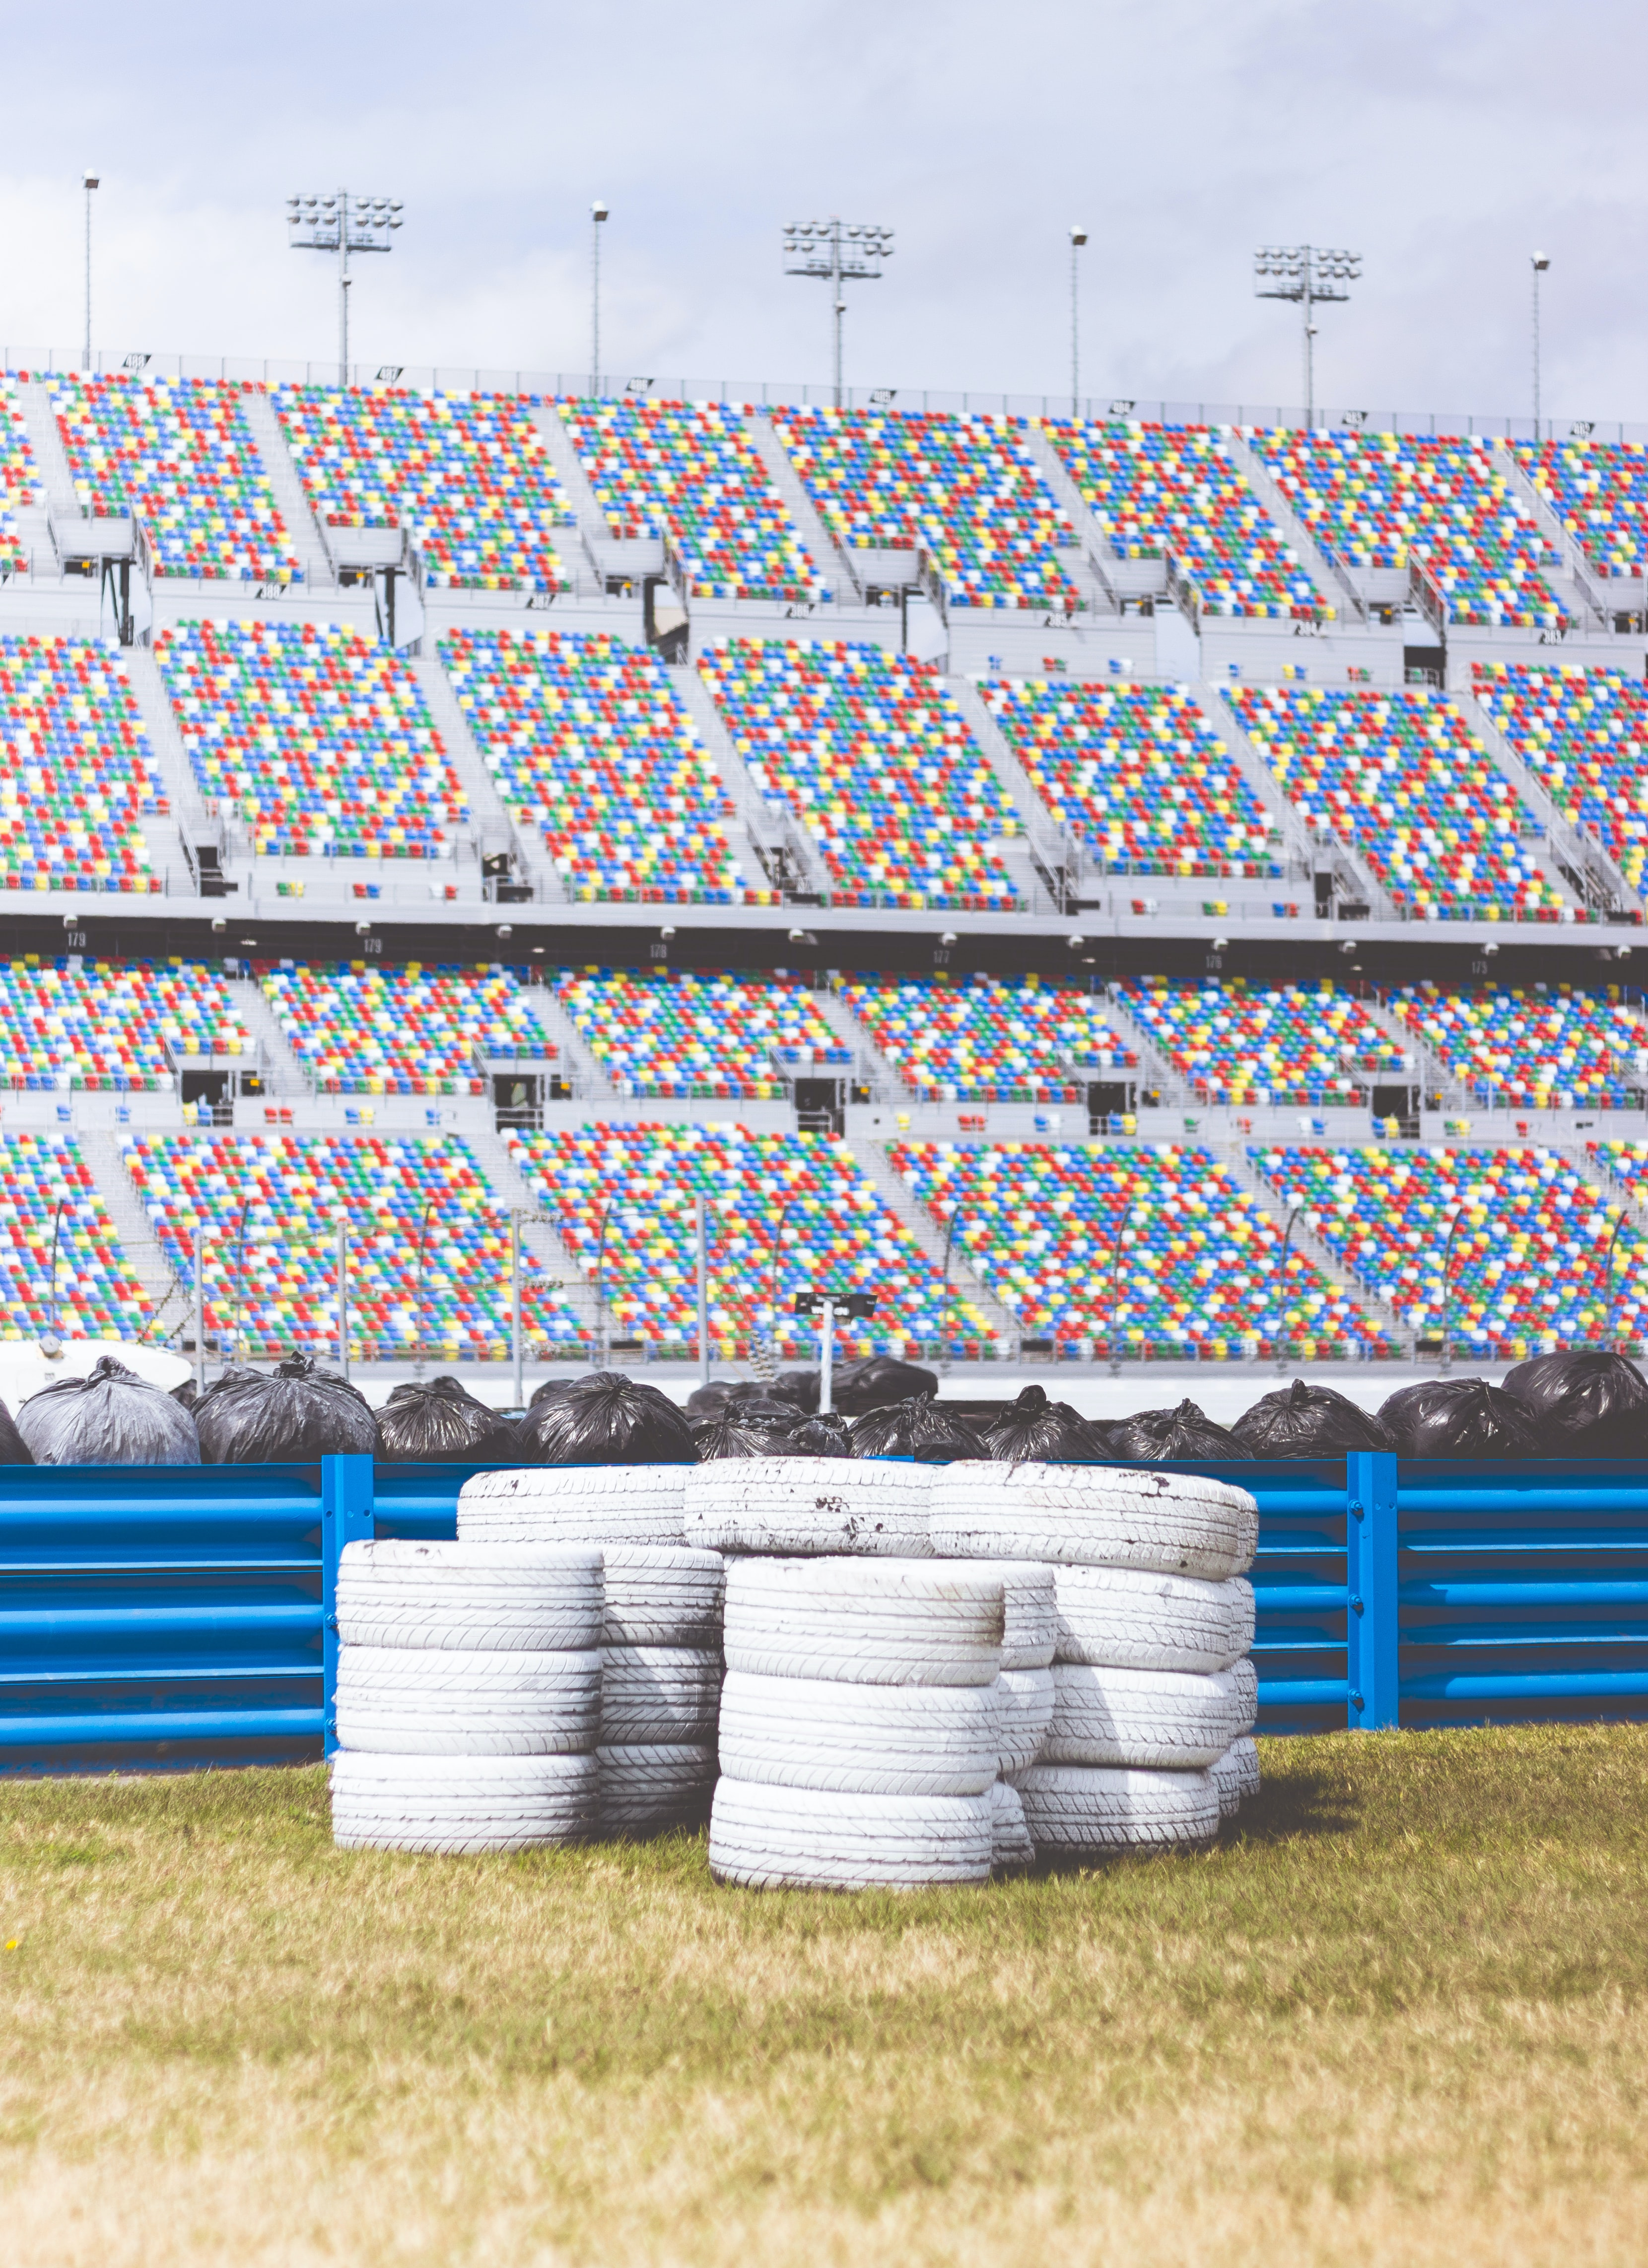 Stacks of white tires by the blue fence and large colorful stand at Daytona International Speedway